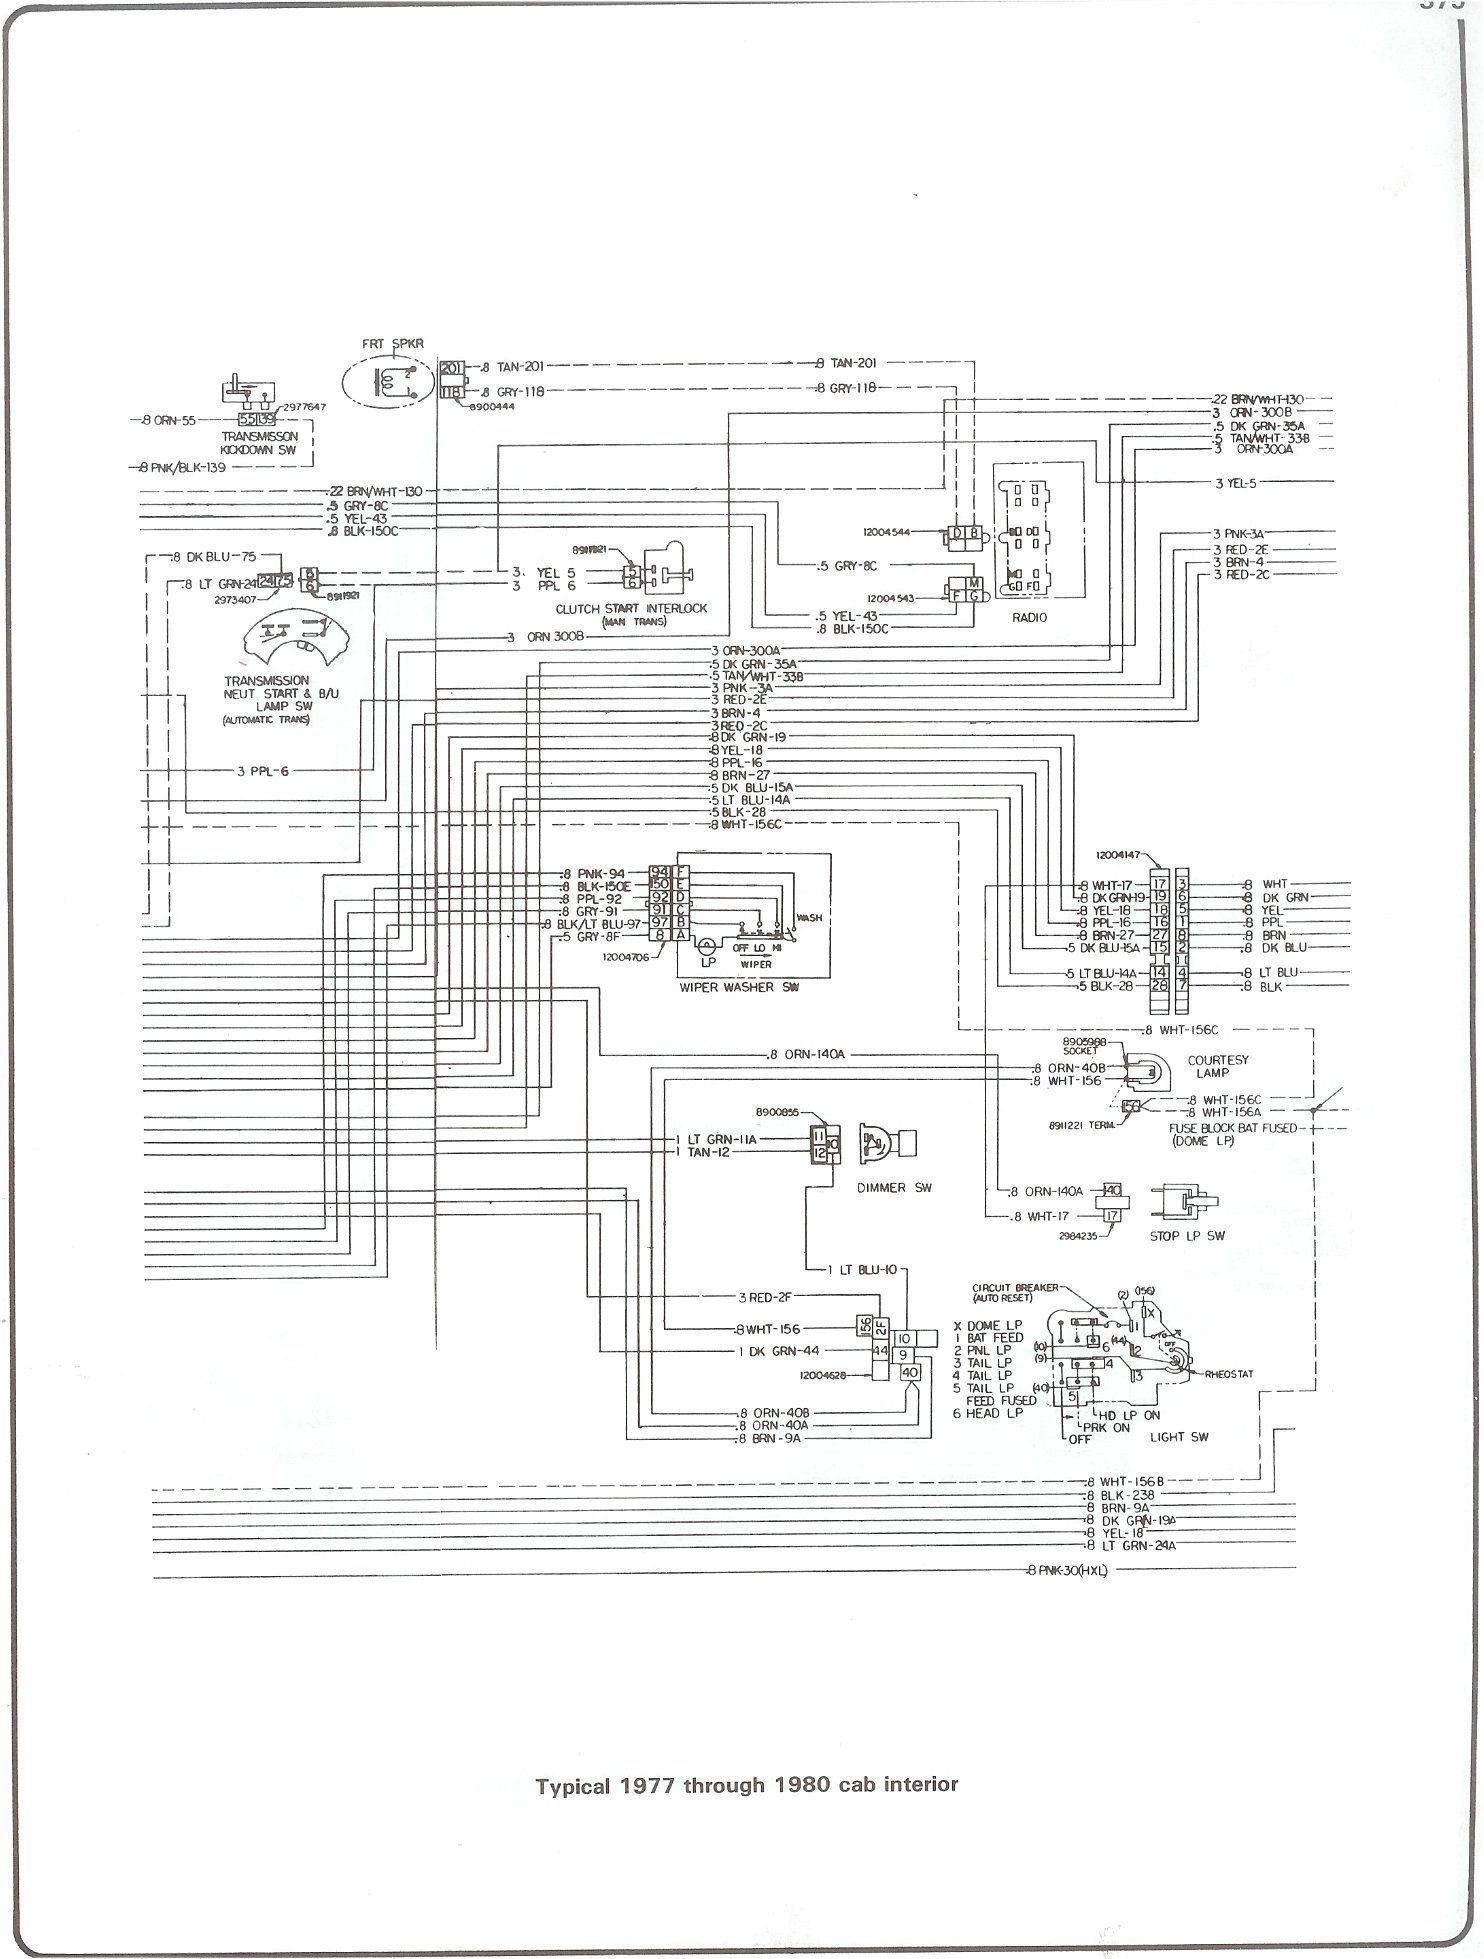 87 Mustang Power Window Wiring Diagram | Wiring Diagram on 71 chevelle alternator wiring, 68 mustang alternator wiring, 93 mustang alternator wiring, 89 mustang alternator wiring, 68 camaro alternator wiring, 92 mustang alternator wiring, 1965 mustang alternator wiring, 93 ford alternator wiring, 86 mustang alternator wiring, 67 mustang alternator wiring, 91 mustang alternator wiring,